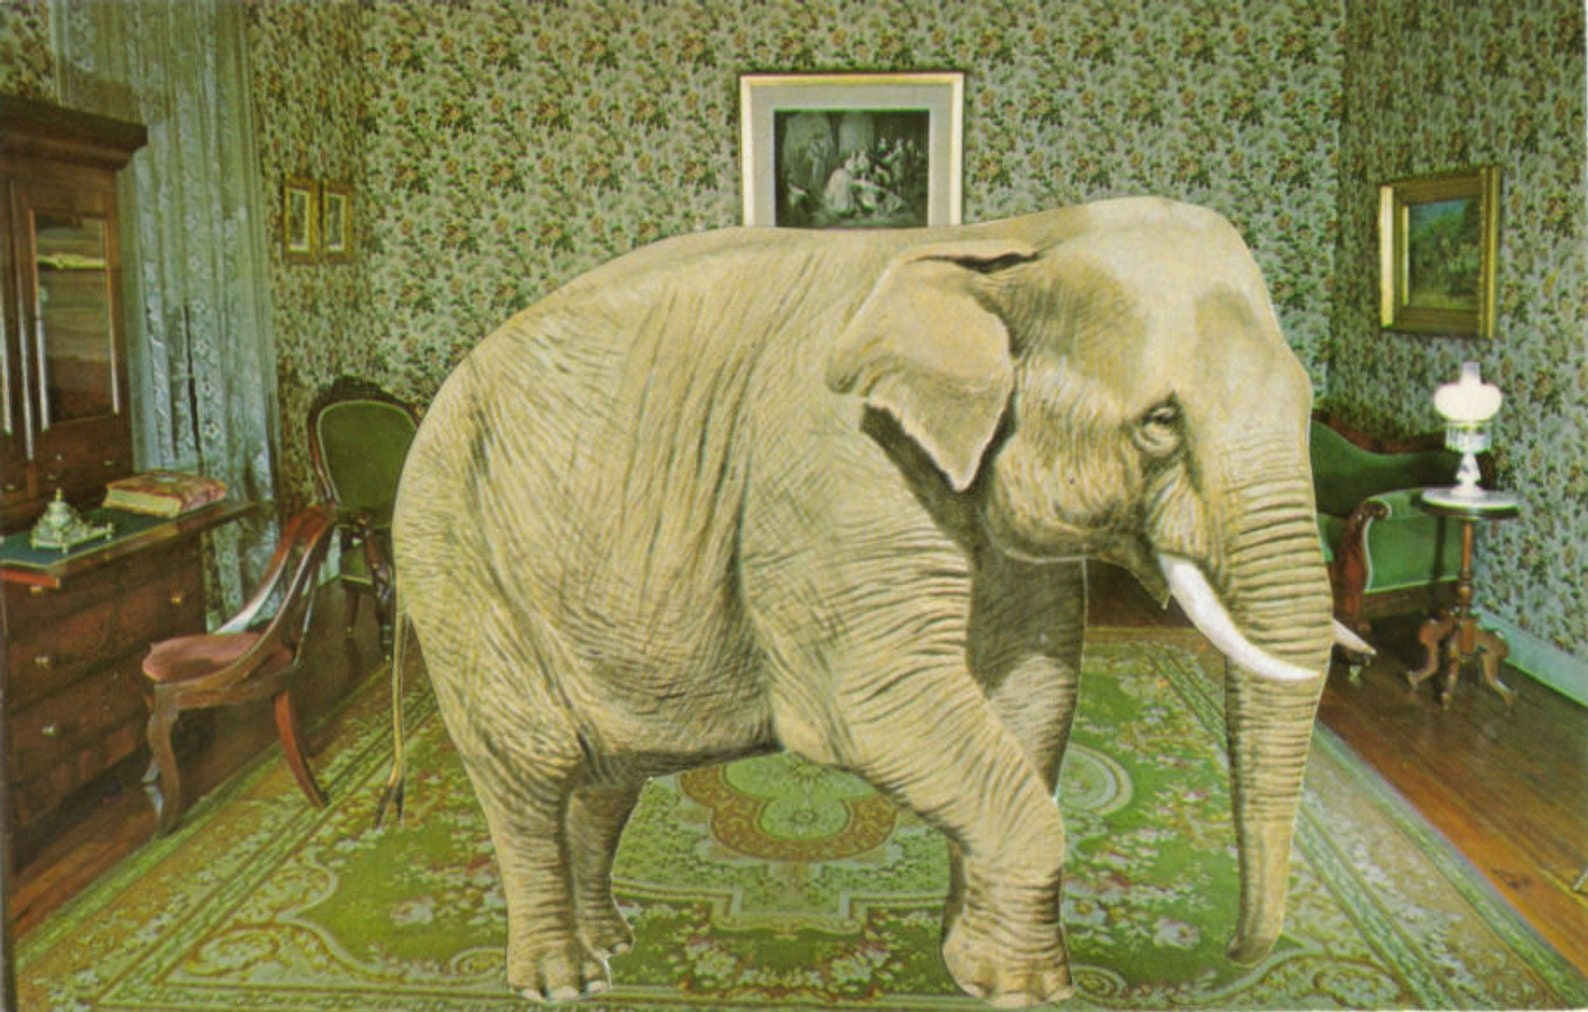 Original,Collage,Art,,Elephant,Artwork,Original Collage Art, Elephant Artwork